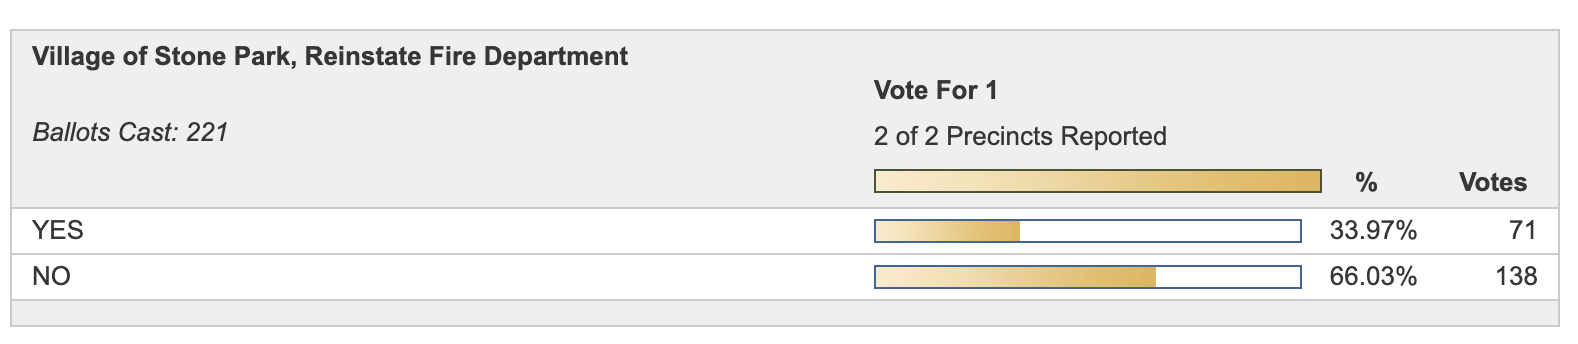 Voting results on the referendum to reinstate the Stone Park Fire Department